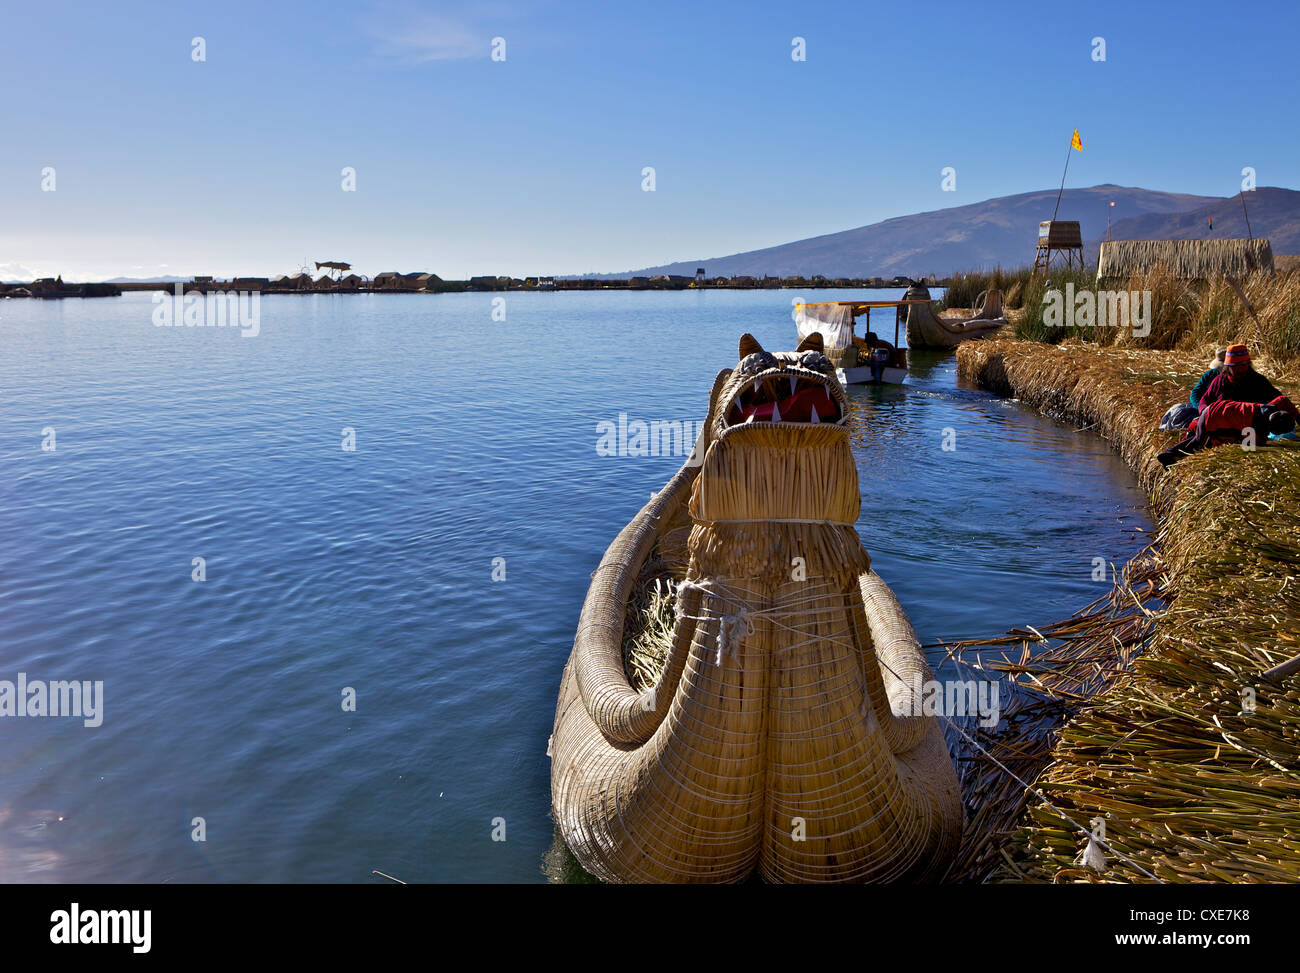 Floating islands of the Uros people, traditional reed boats and reed houses, Lake Titicaca, peru, peruvian, South - Stock Image